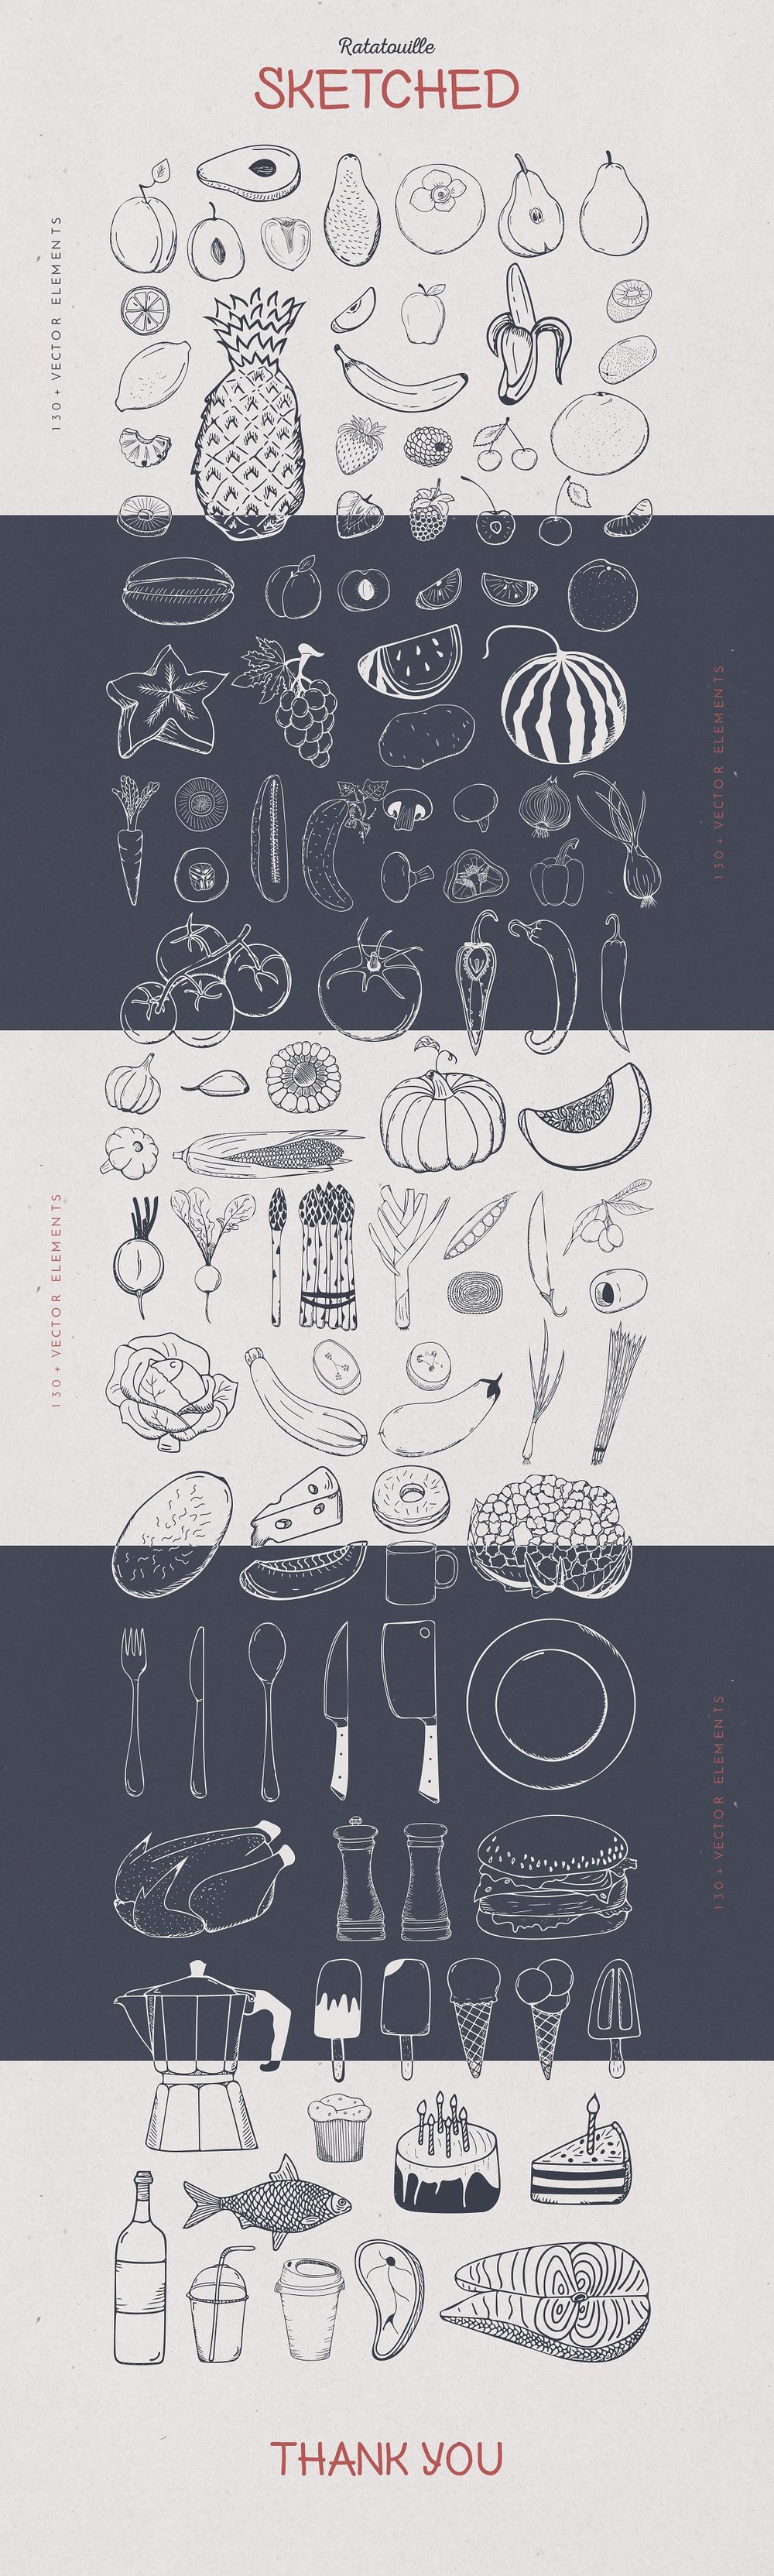 Ratatouille Sketched Vector Set